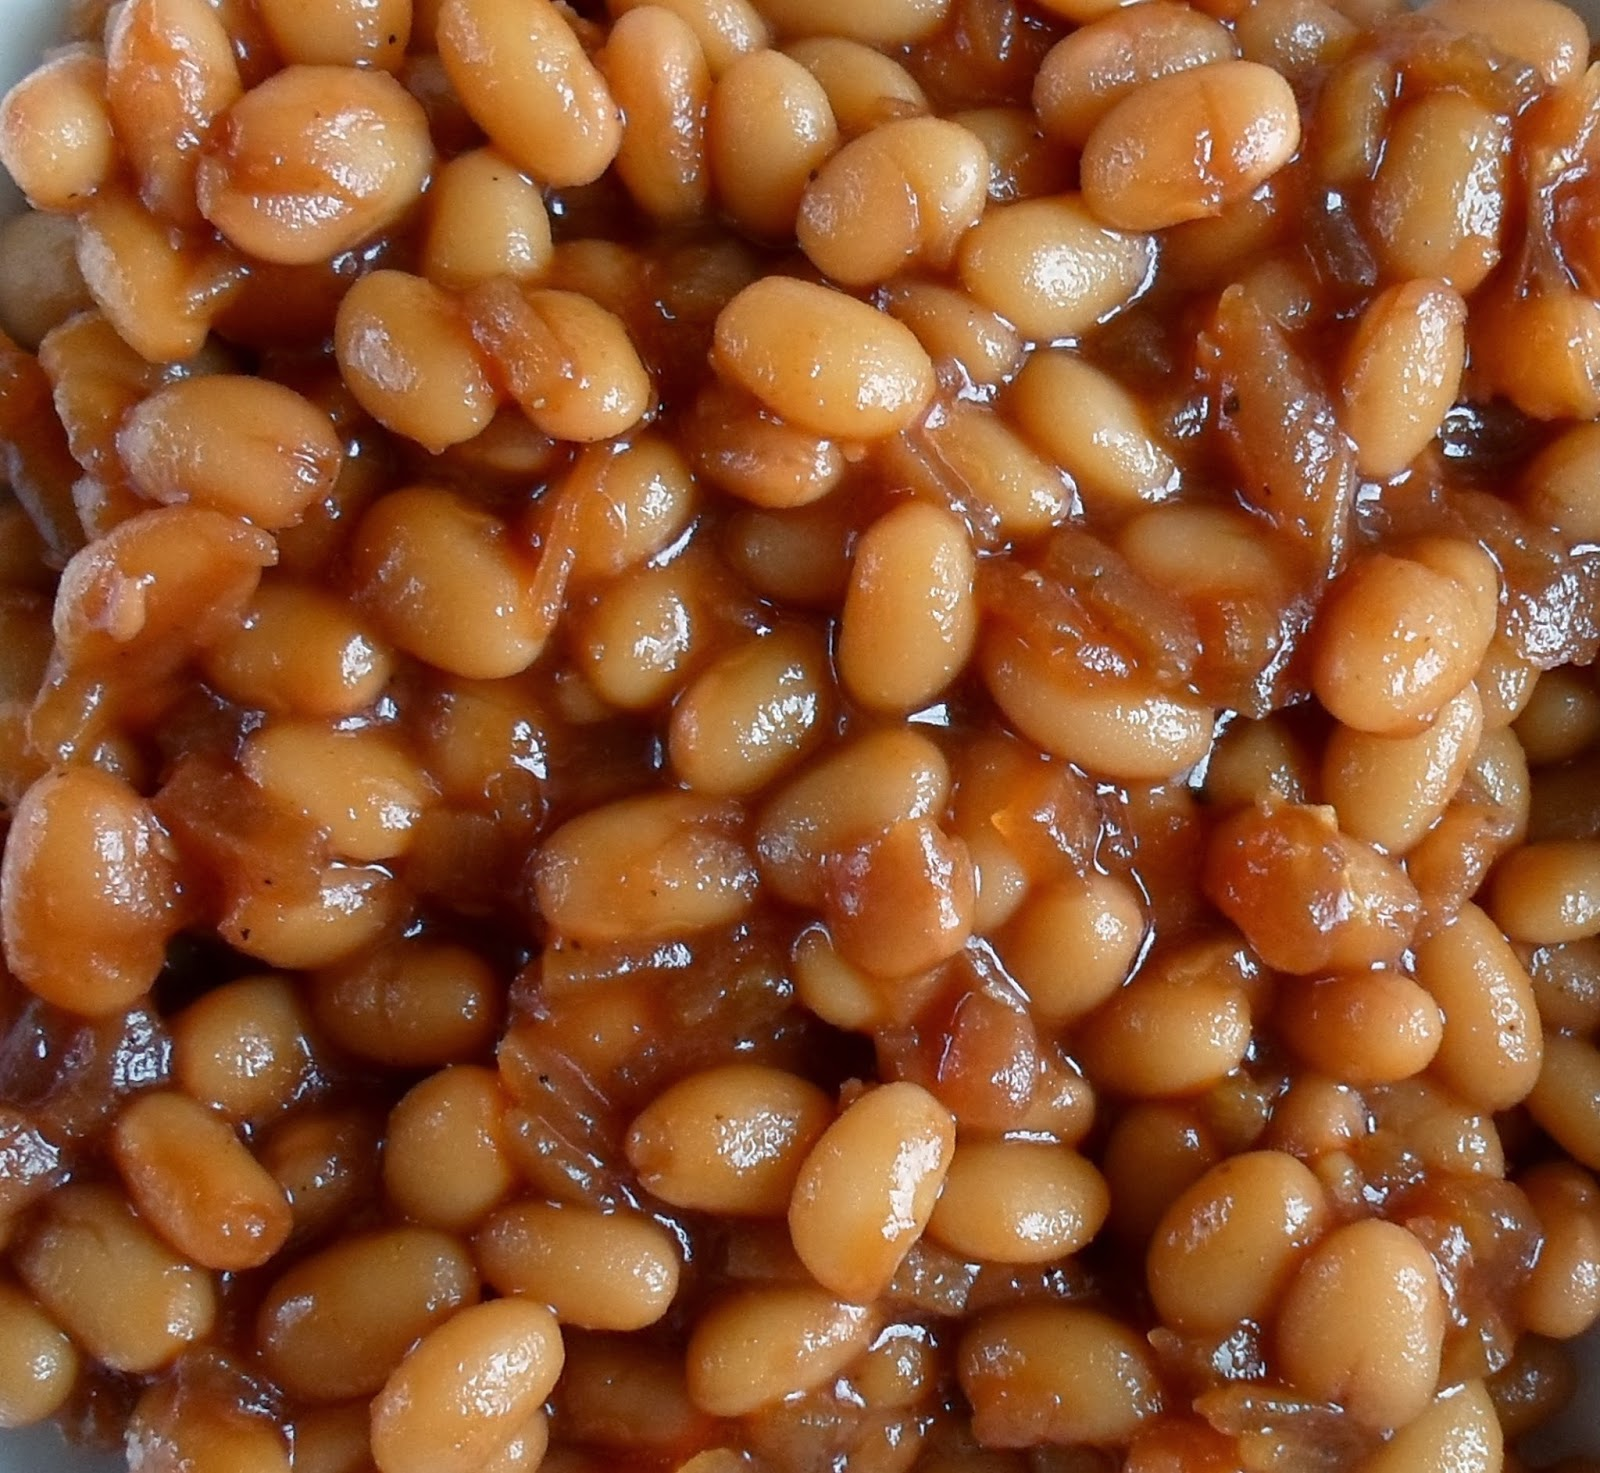 boston baked beans down home baked beans recipe down home baked beans ...